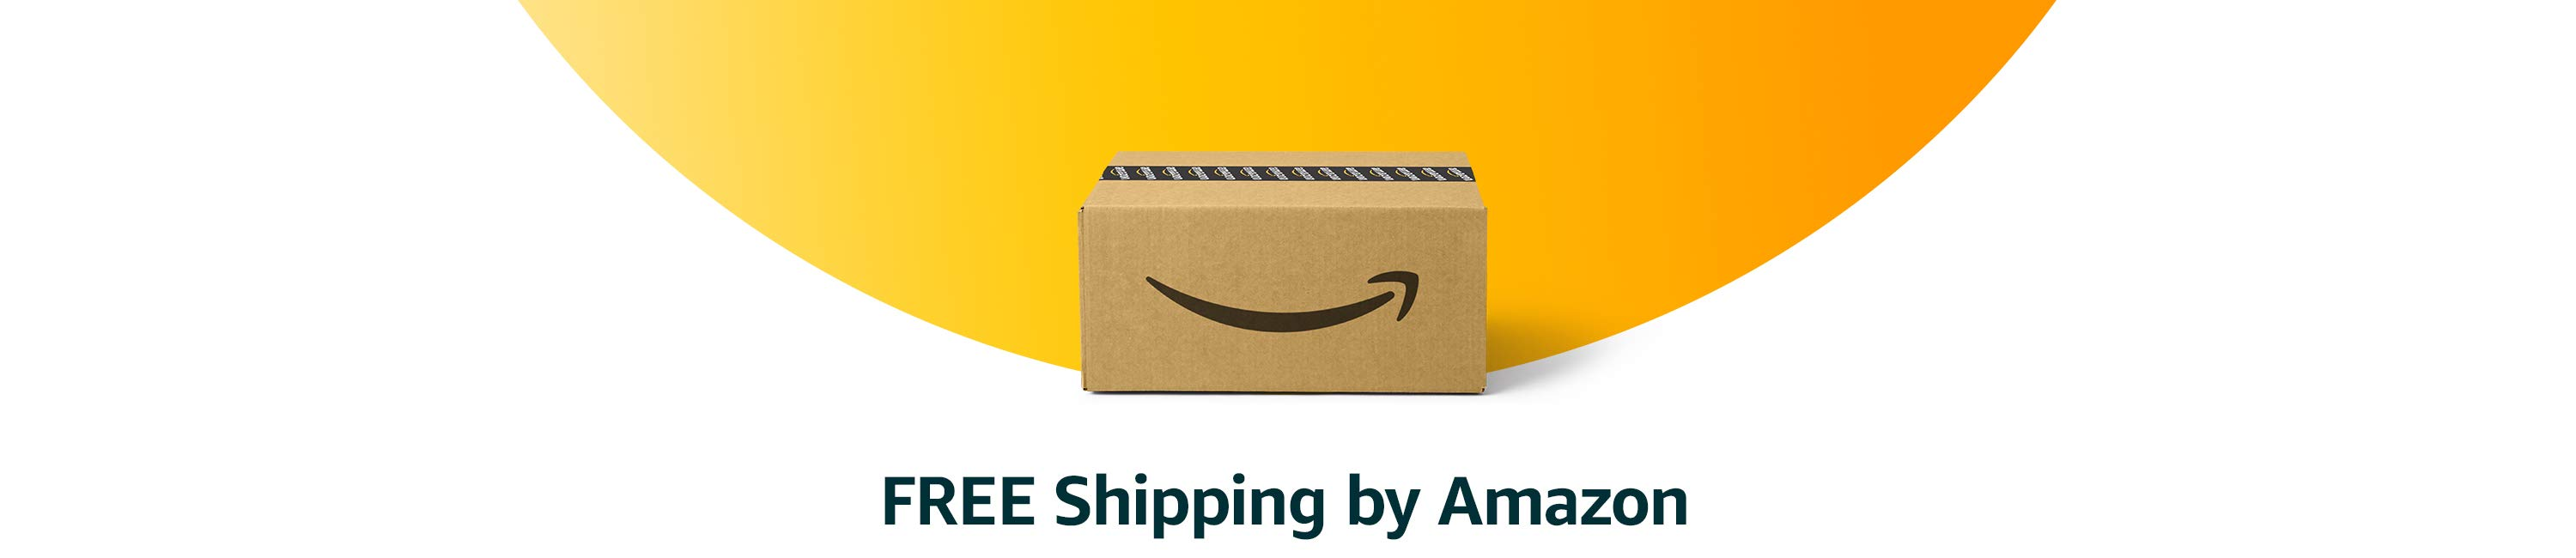 FREE Shipping by Amazon